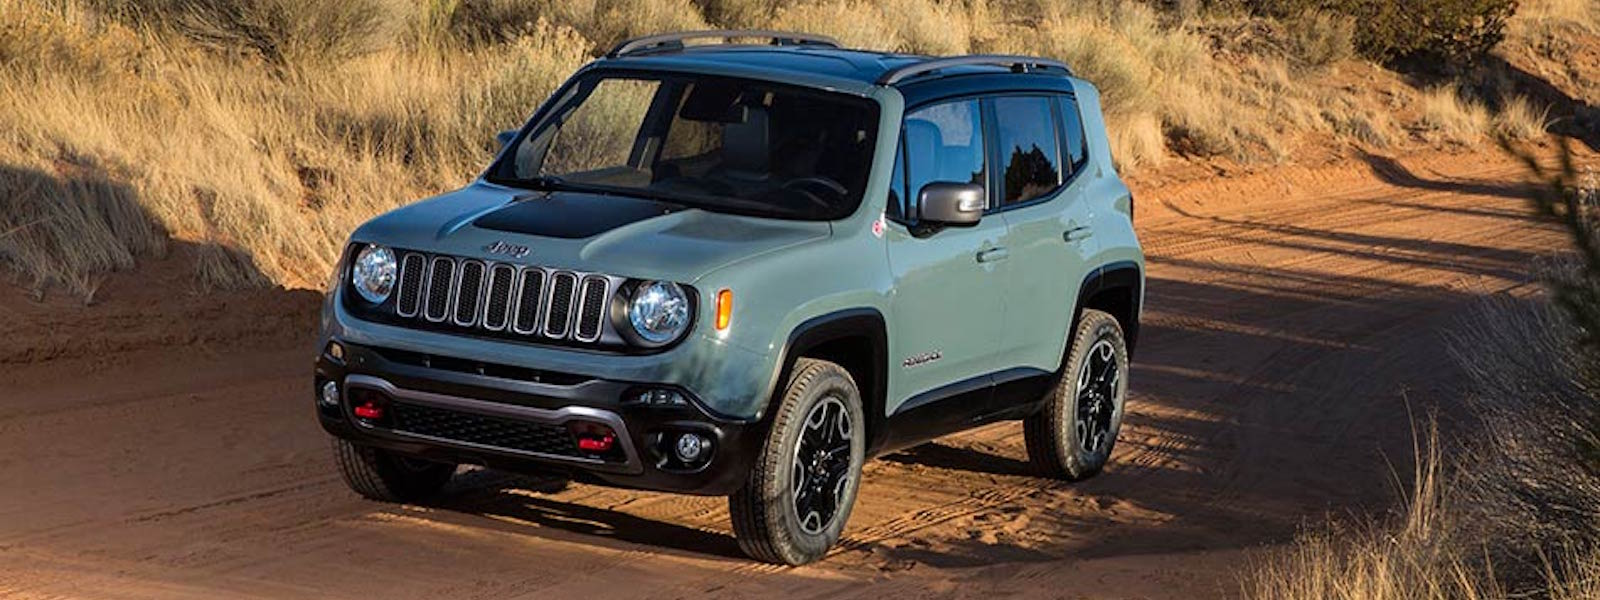 Green 2016 Jeep Renegade driving off road in savannah